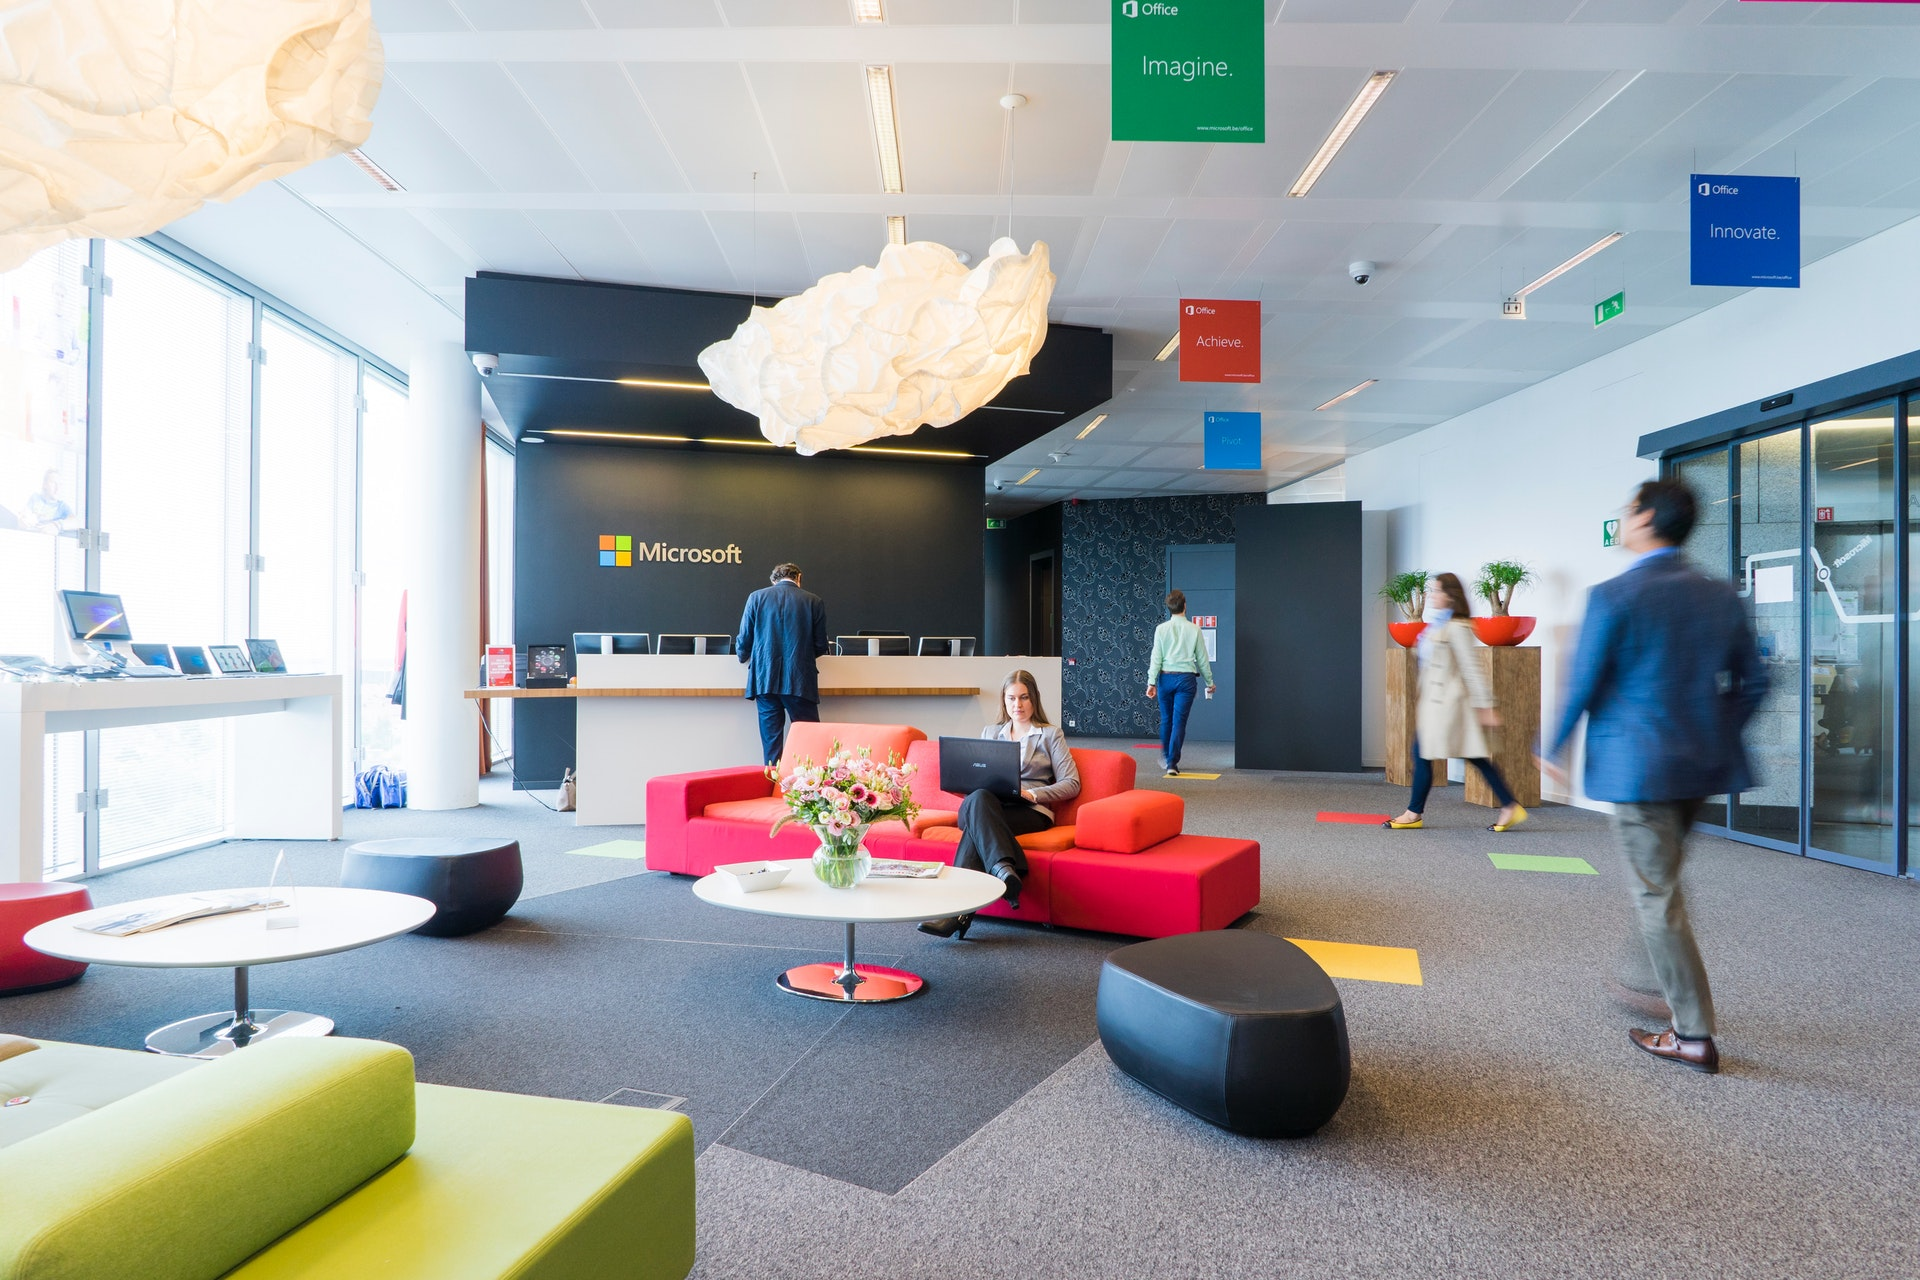 How a Well-Designed Office Affects Employees and Company Performance